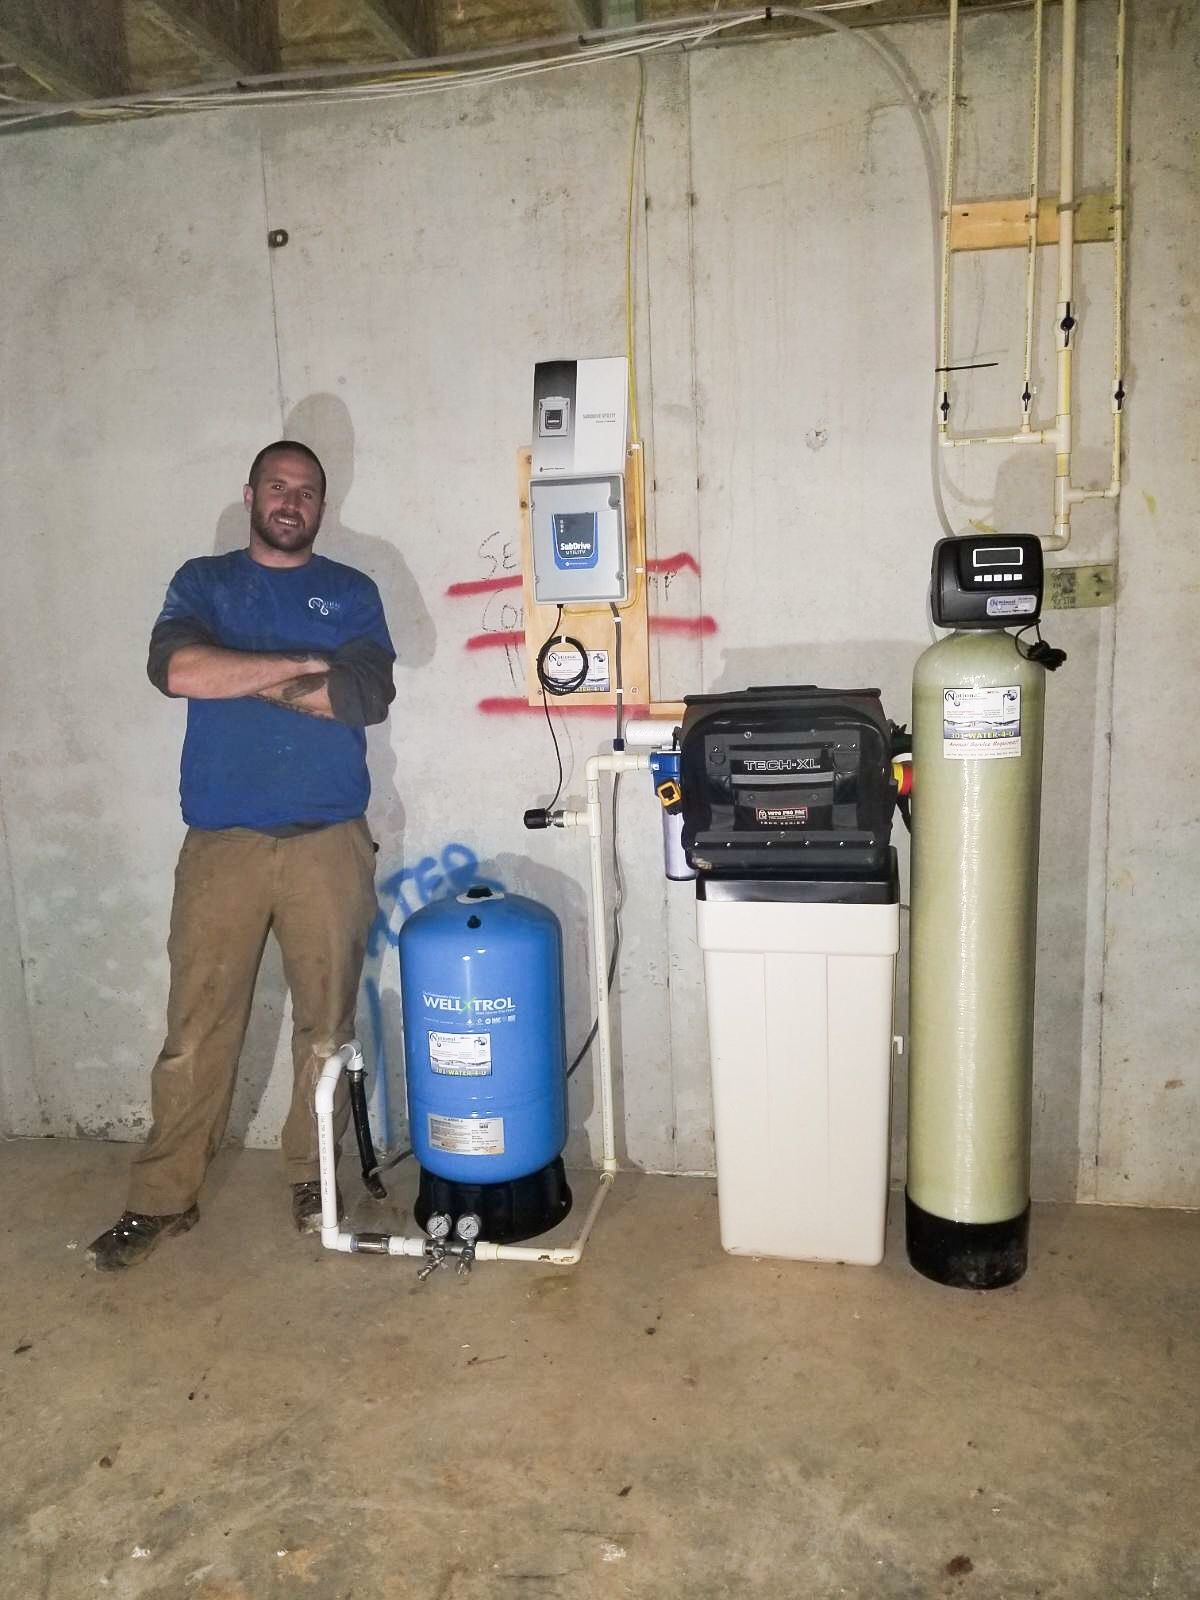 New Installation Of A Pressure Tank Water Softener Subdrive Pump Control Box And Sediment Filter Water Treatment Home Water Filtration Water Softener